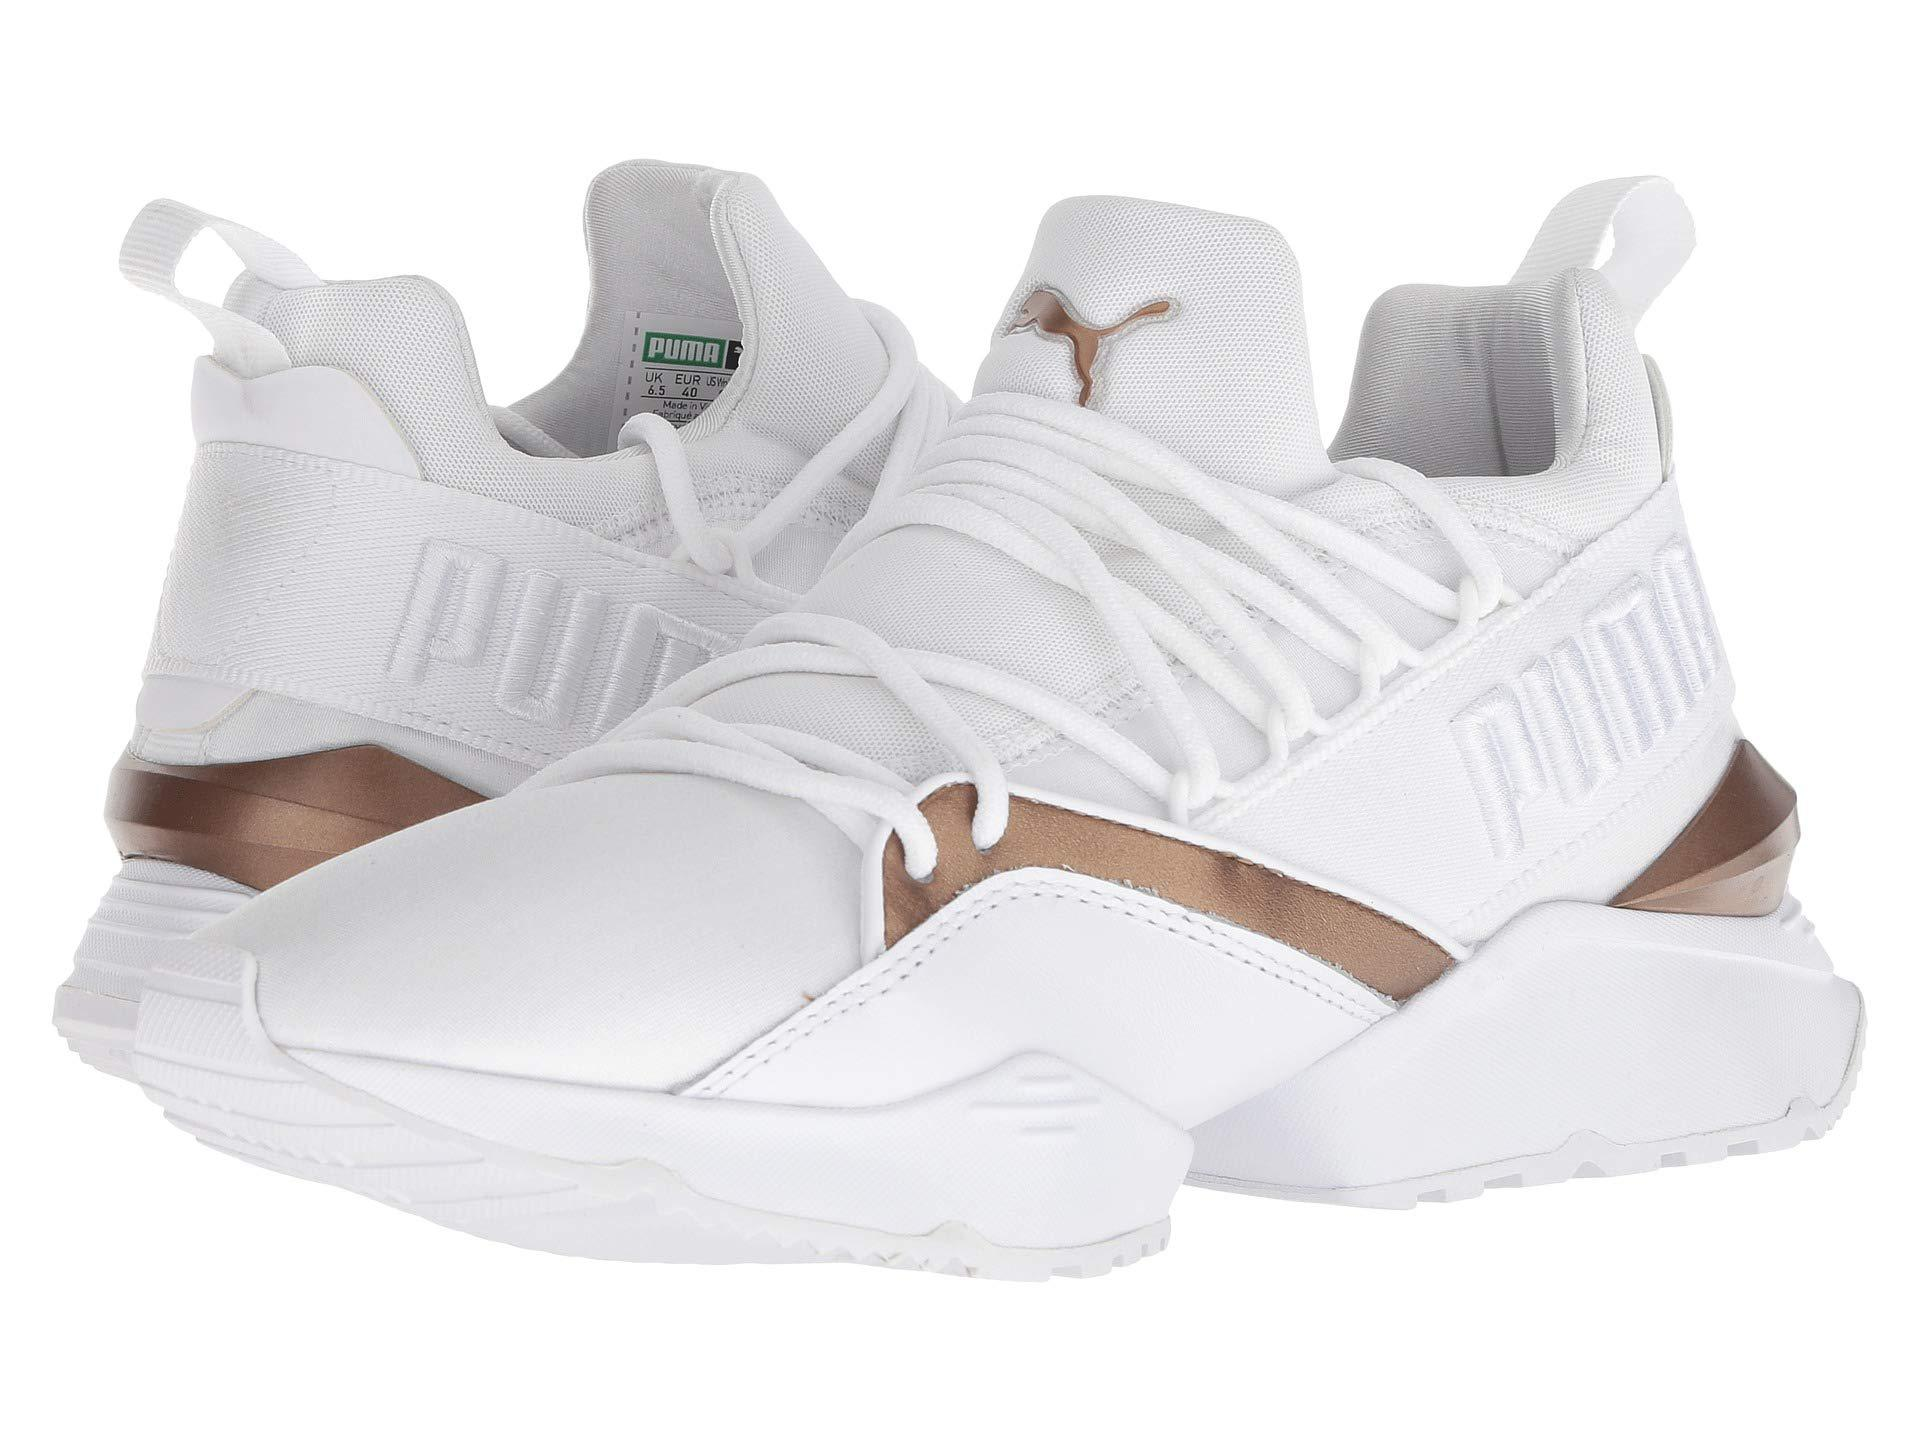 PUMA - Muse Maia Luxe ( White  White) Women s Lace Up Casual Shoes -. View  fullscreen 416516a38